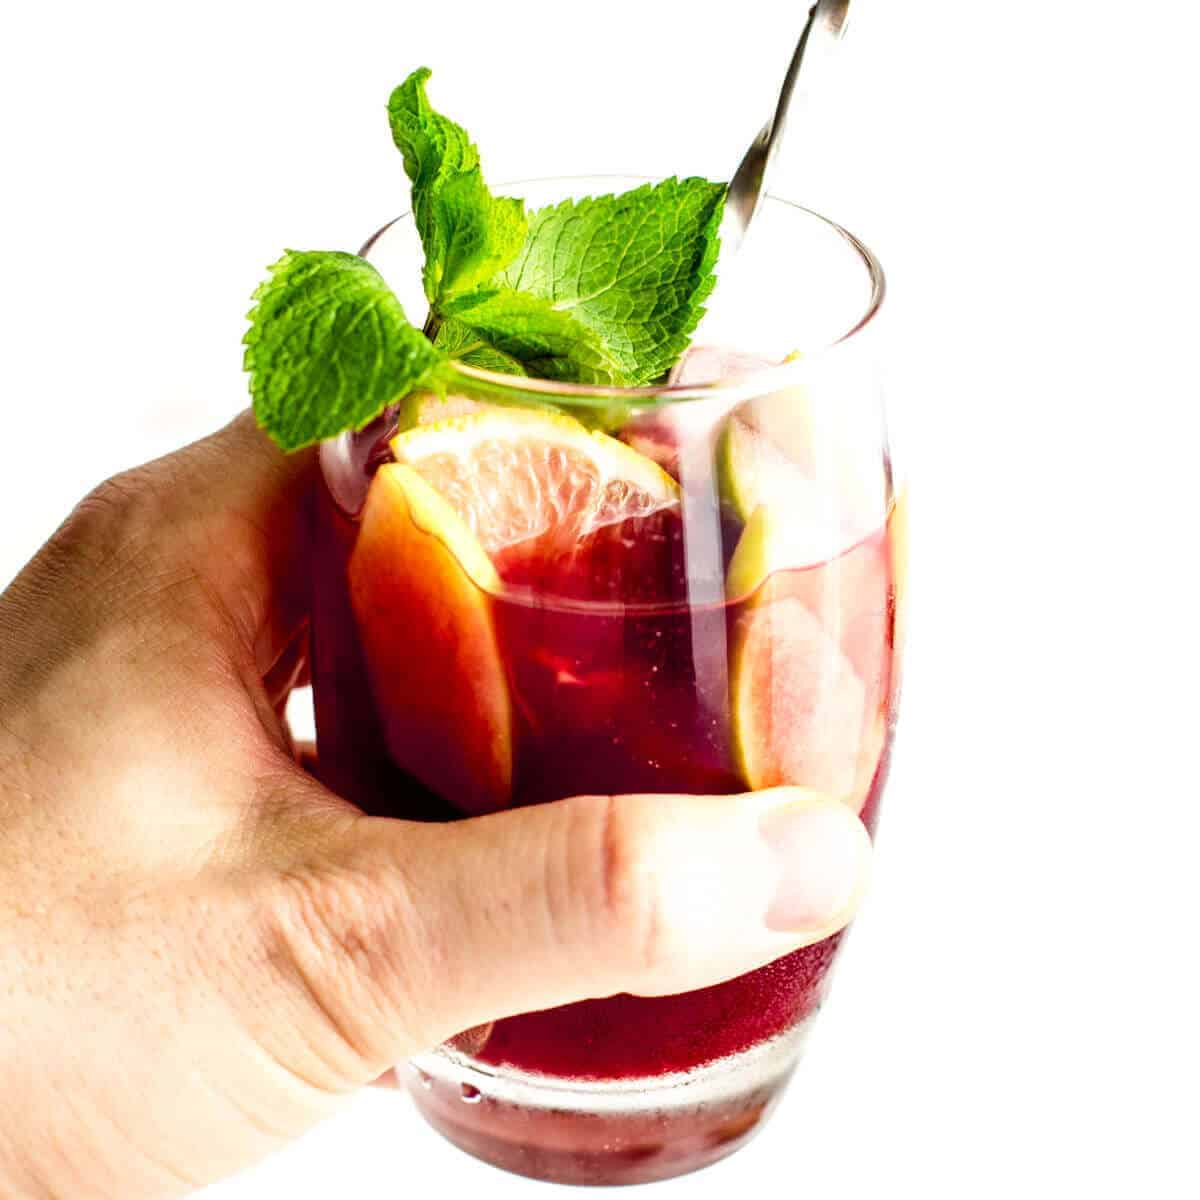 hand holding a glass of red sangria with mint, lemon, apples and ice